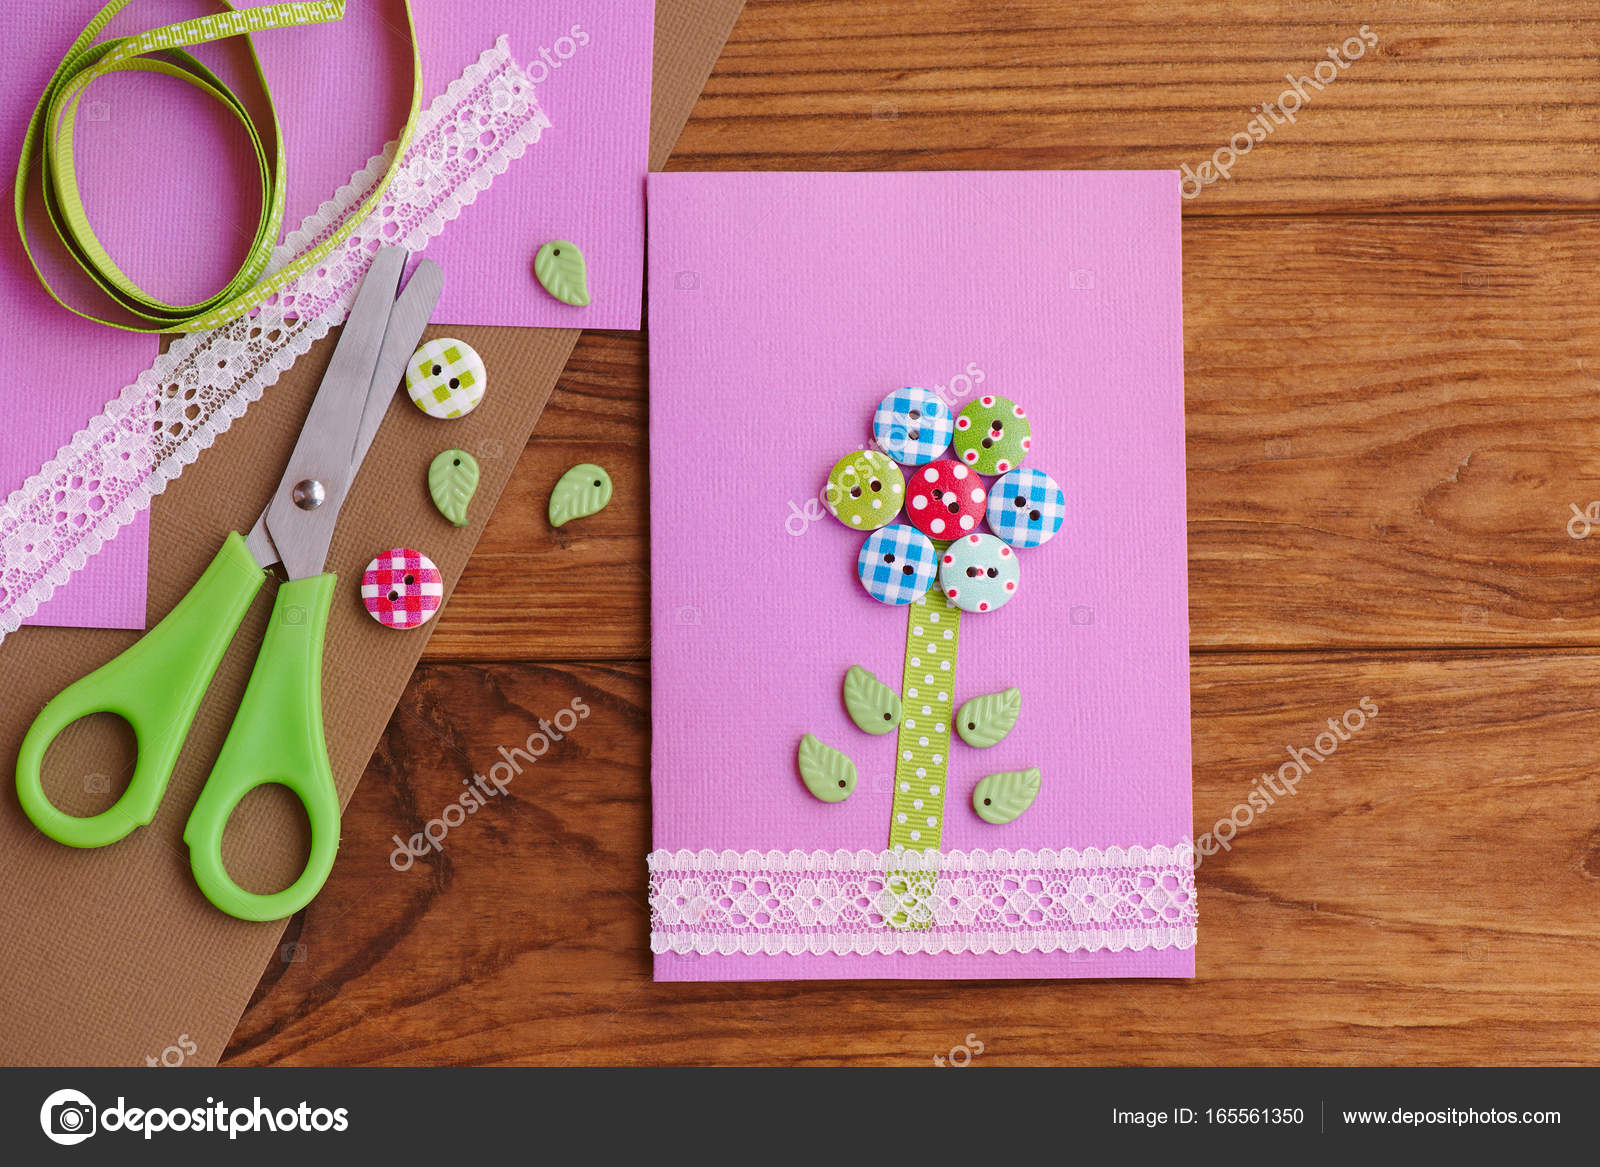 Greeting card with a flower from wooden buttons decorated with lace birthday card for mom mothers day diy tools and materials on a wooden table greeting card kids can make kristyandbryce Choice Image